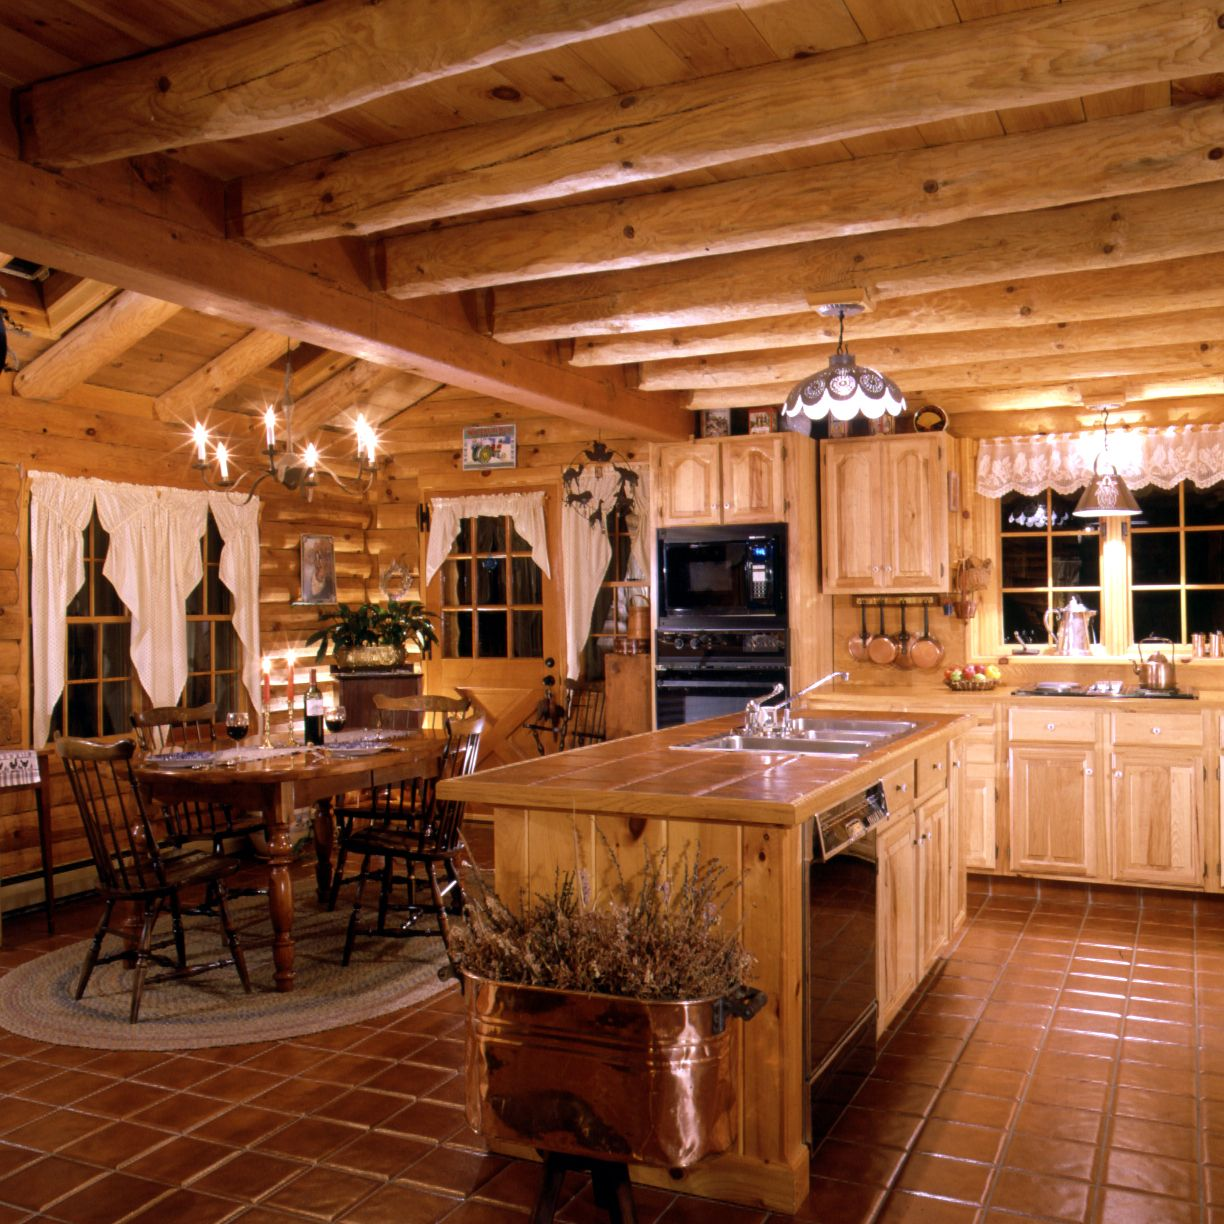 Log Home Kitchen Counter Choices Log Home Kitchens Log Cabin